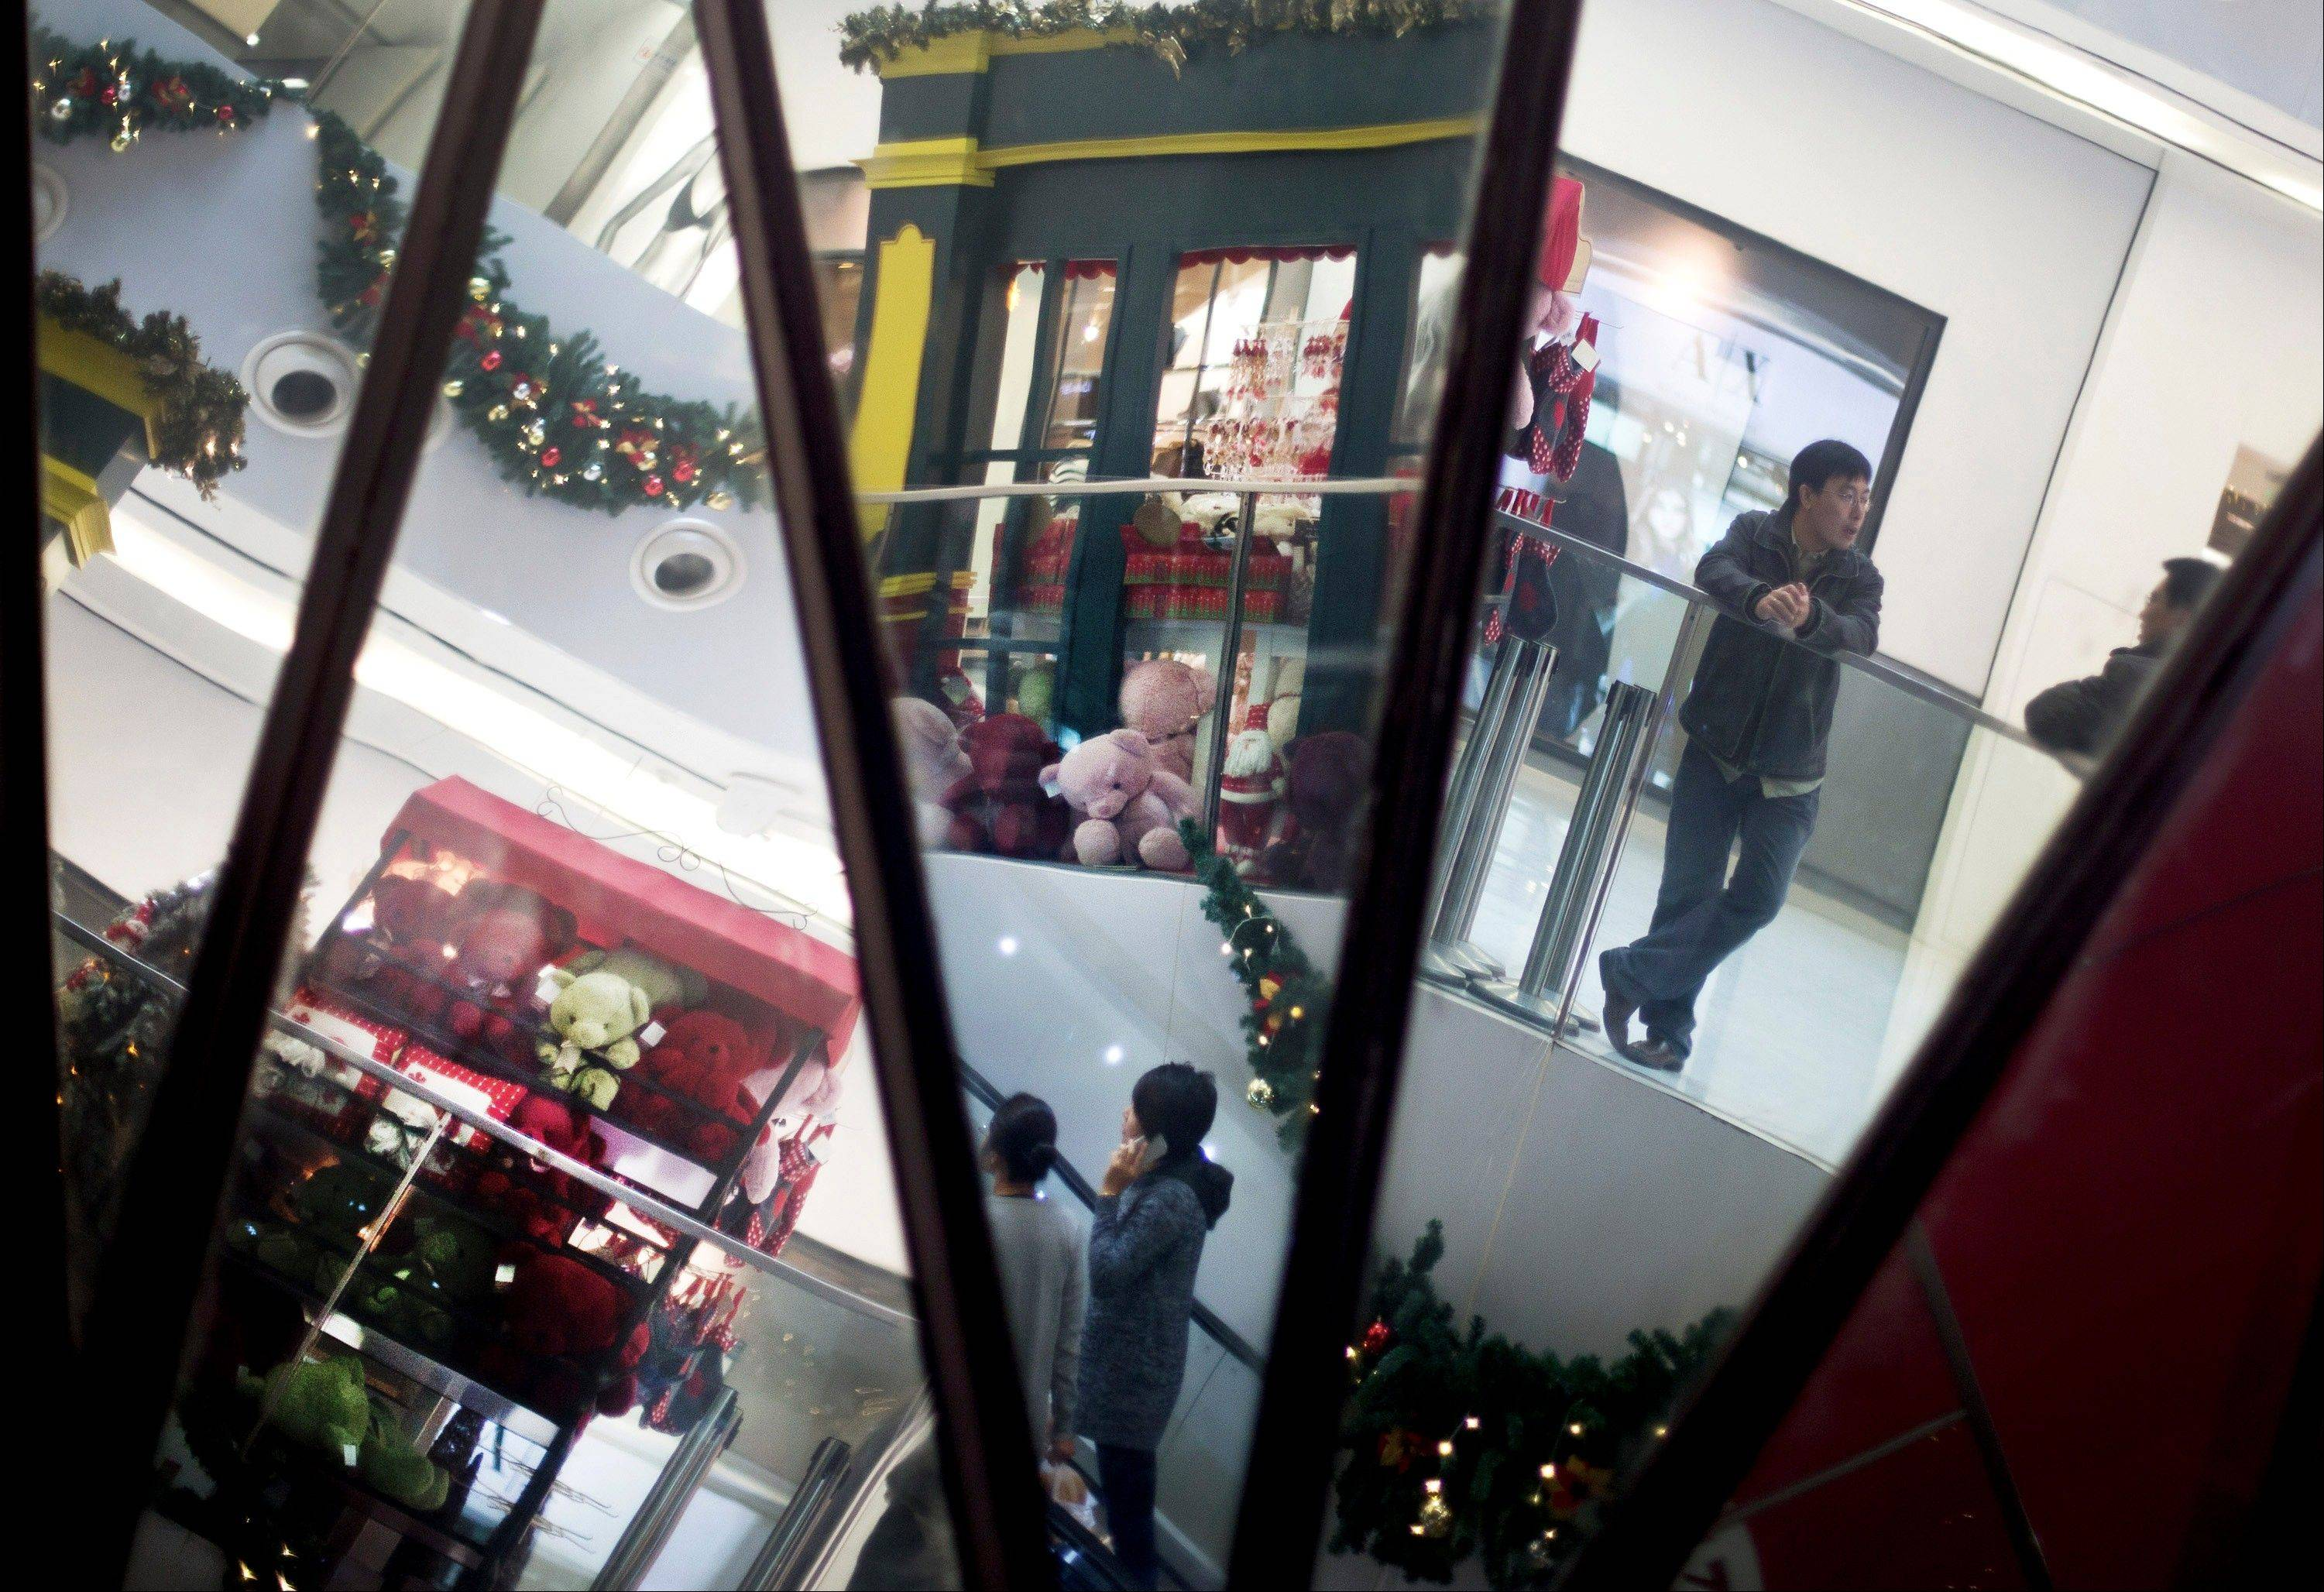 Chinese shoppers and Christmas decorations are reflected in mirrors inside a shopping mall Monday in Beijing. China�s trade weakened sharply in November, adding to challenges for the world�s second-largest economy as a gradual recovery takes shape. Export growth plunged to 2.9 percent over a year earlier from the previous month�s 11.6 percent.